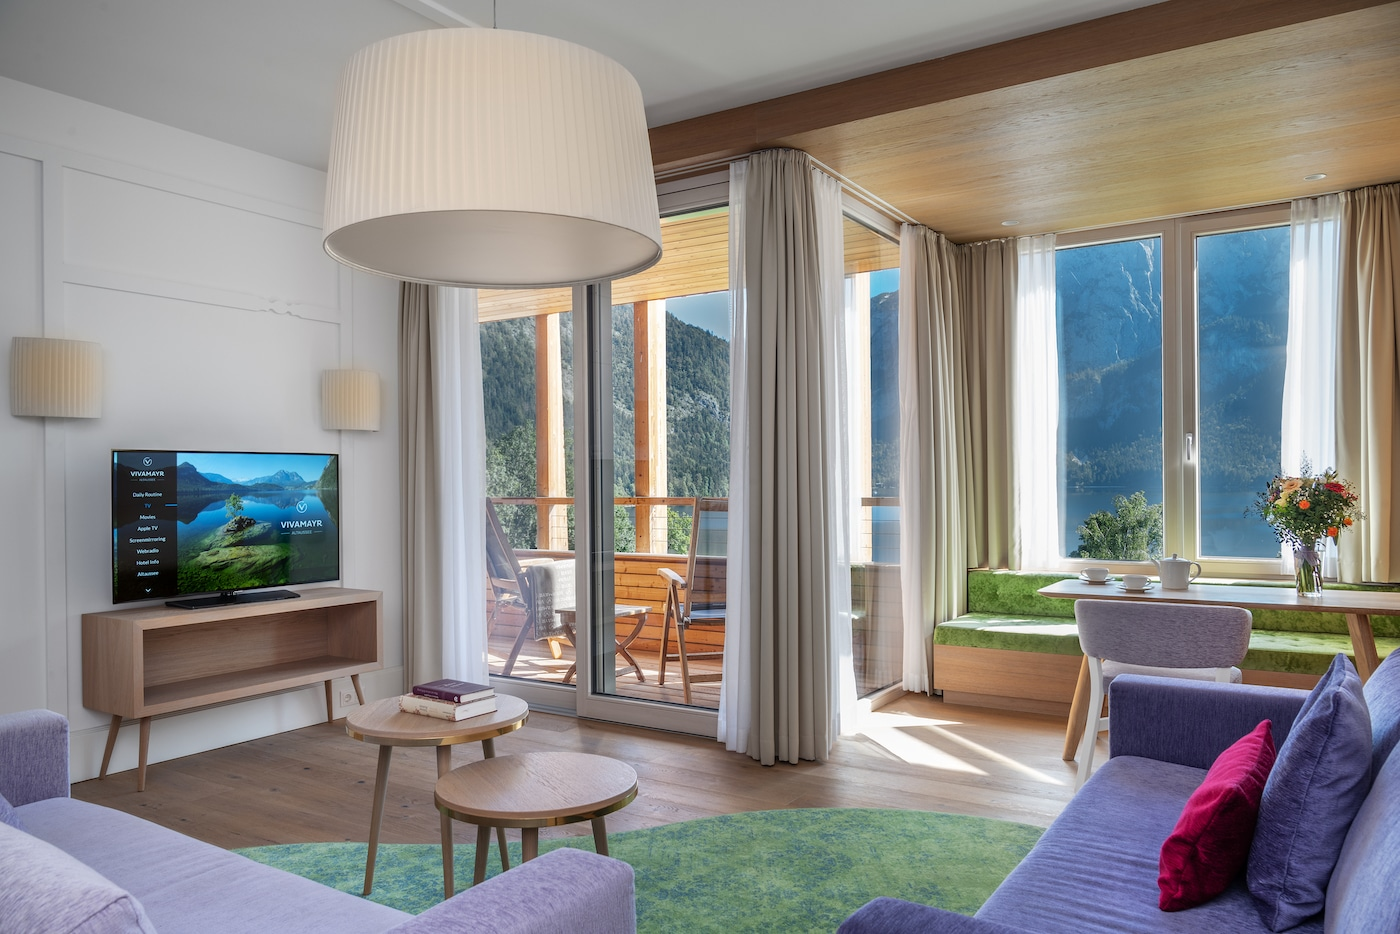 living-room filled with light in Junior Suite with lake view VIVAMAYR Altausee